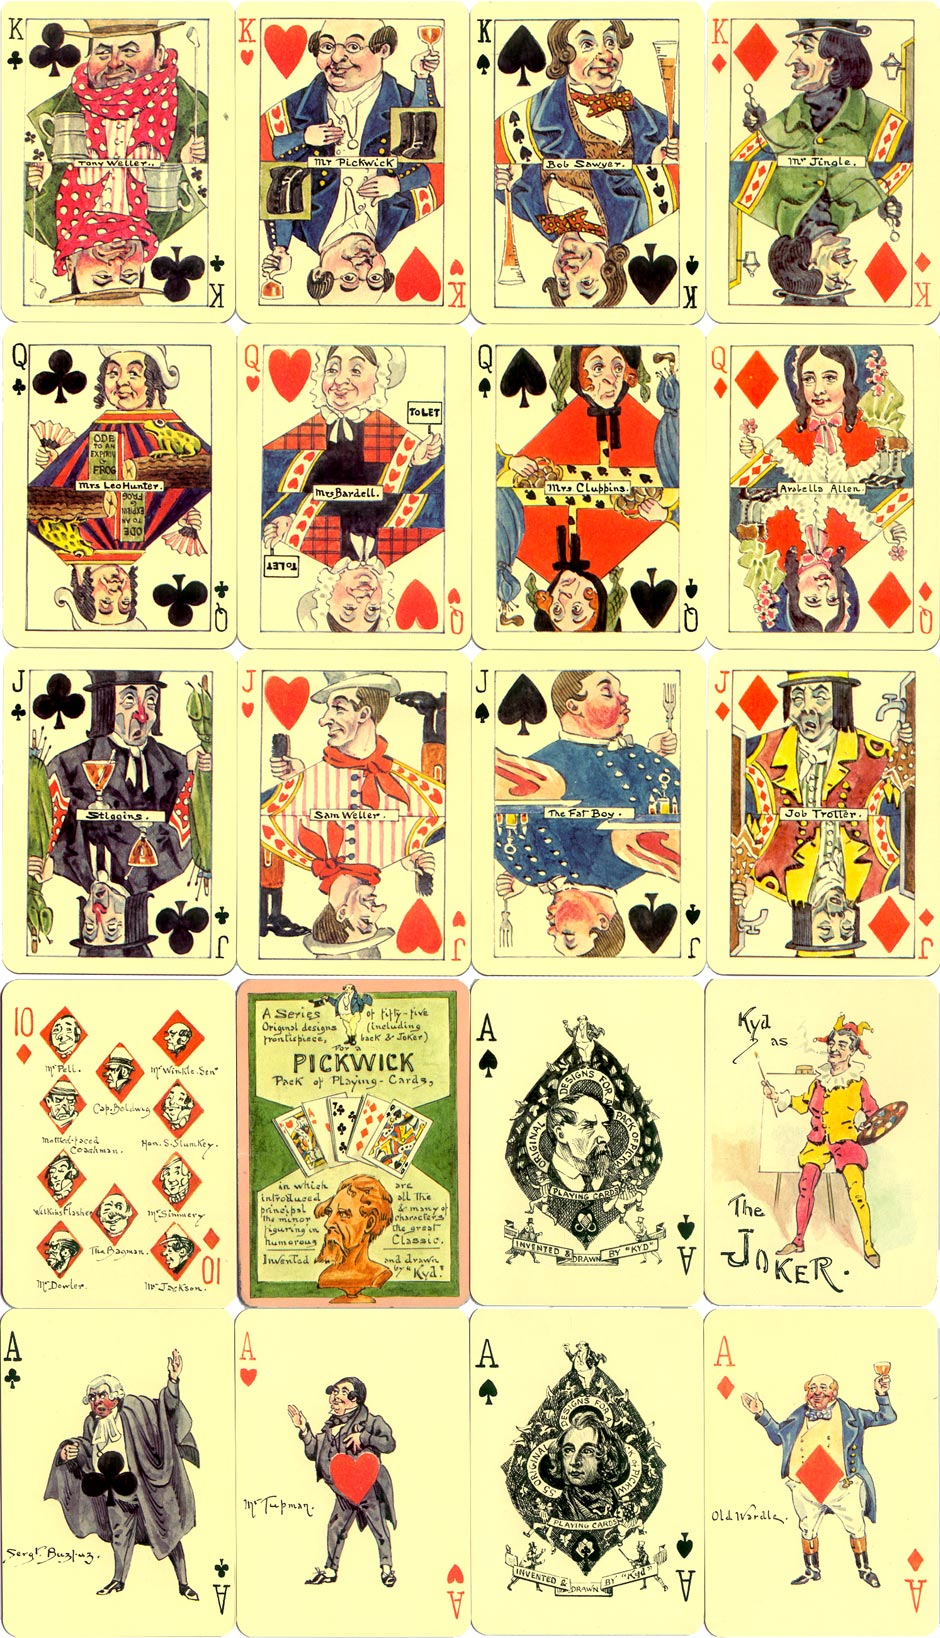 Pickwick Playing Cards invented and drawn by 'Kyd'